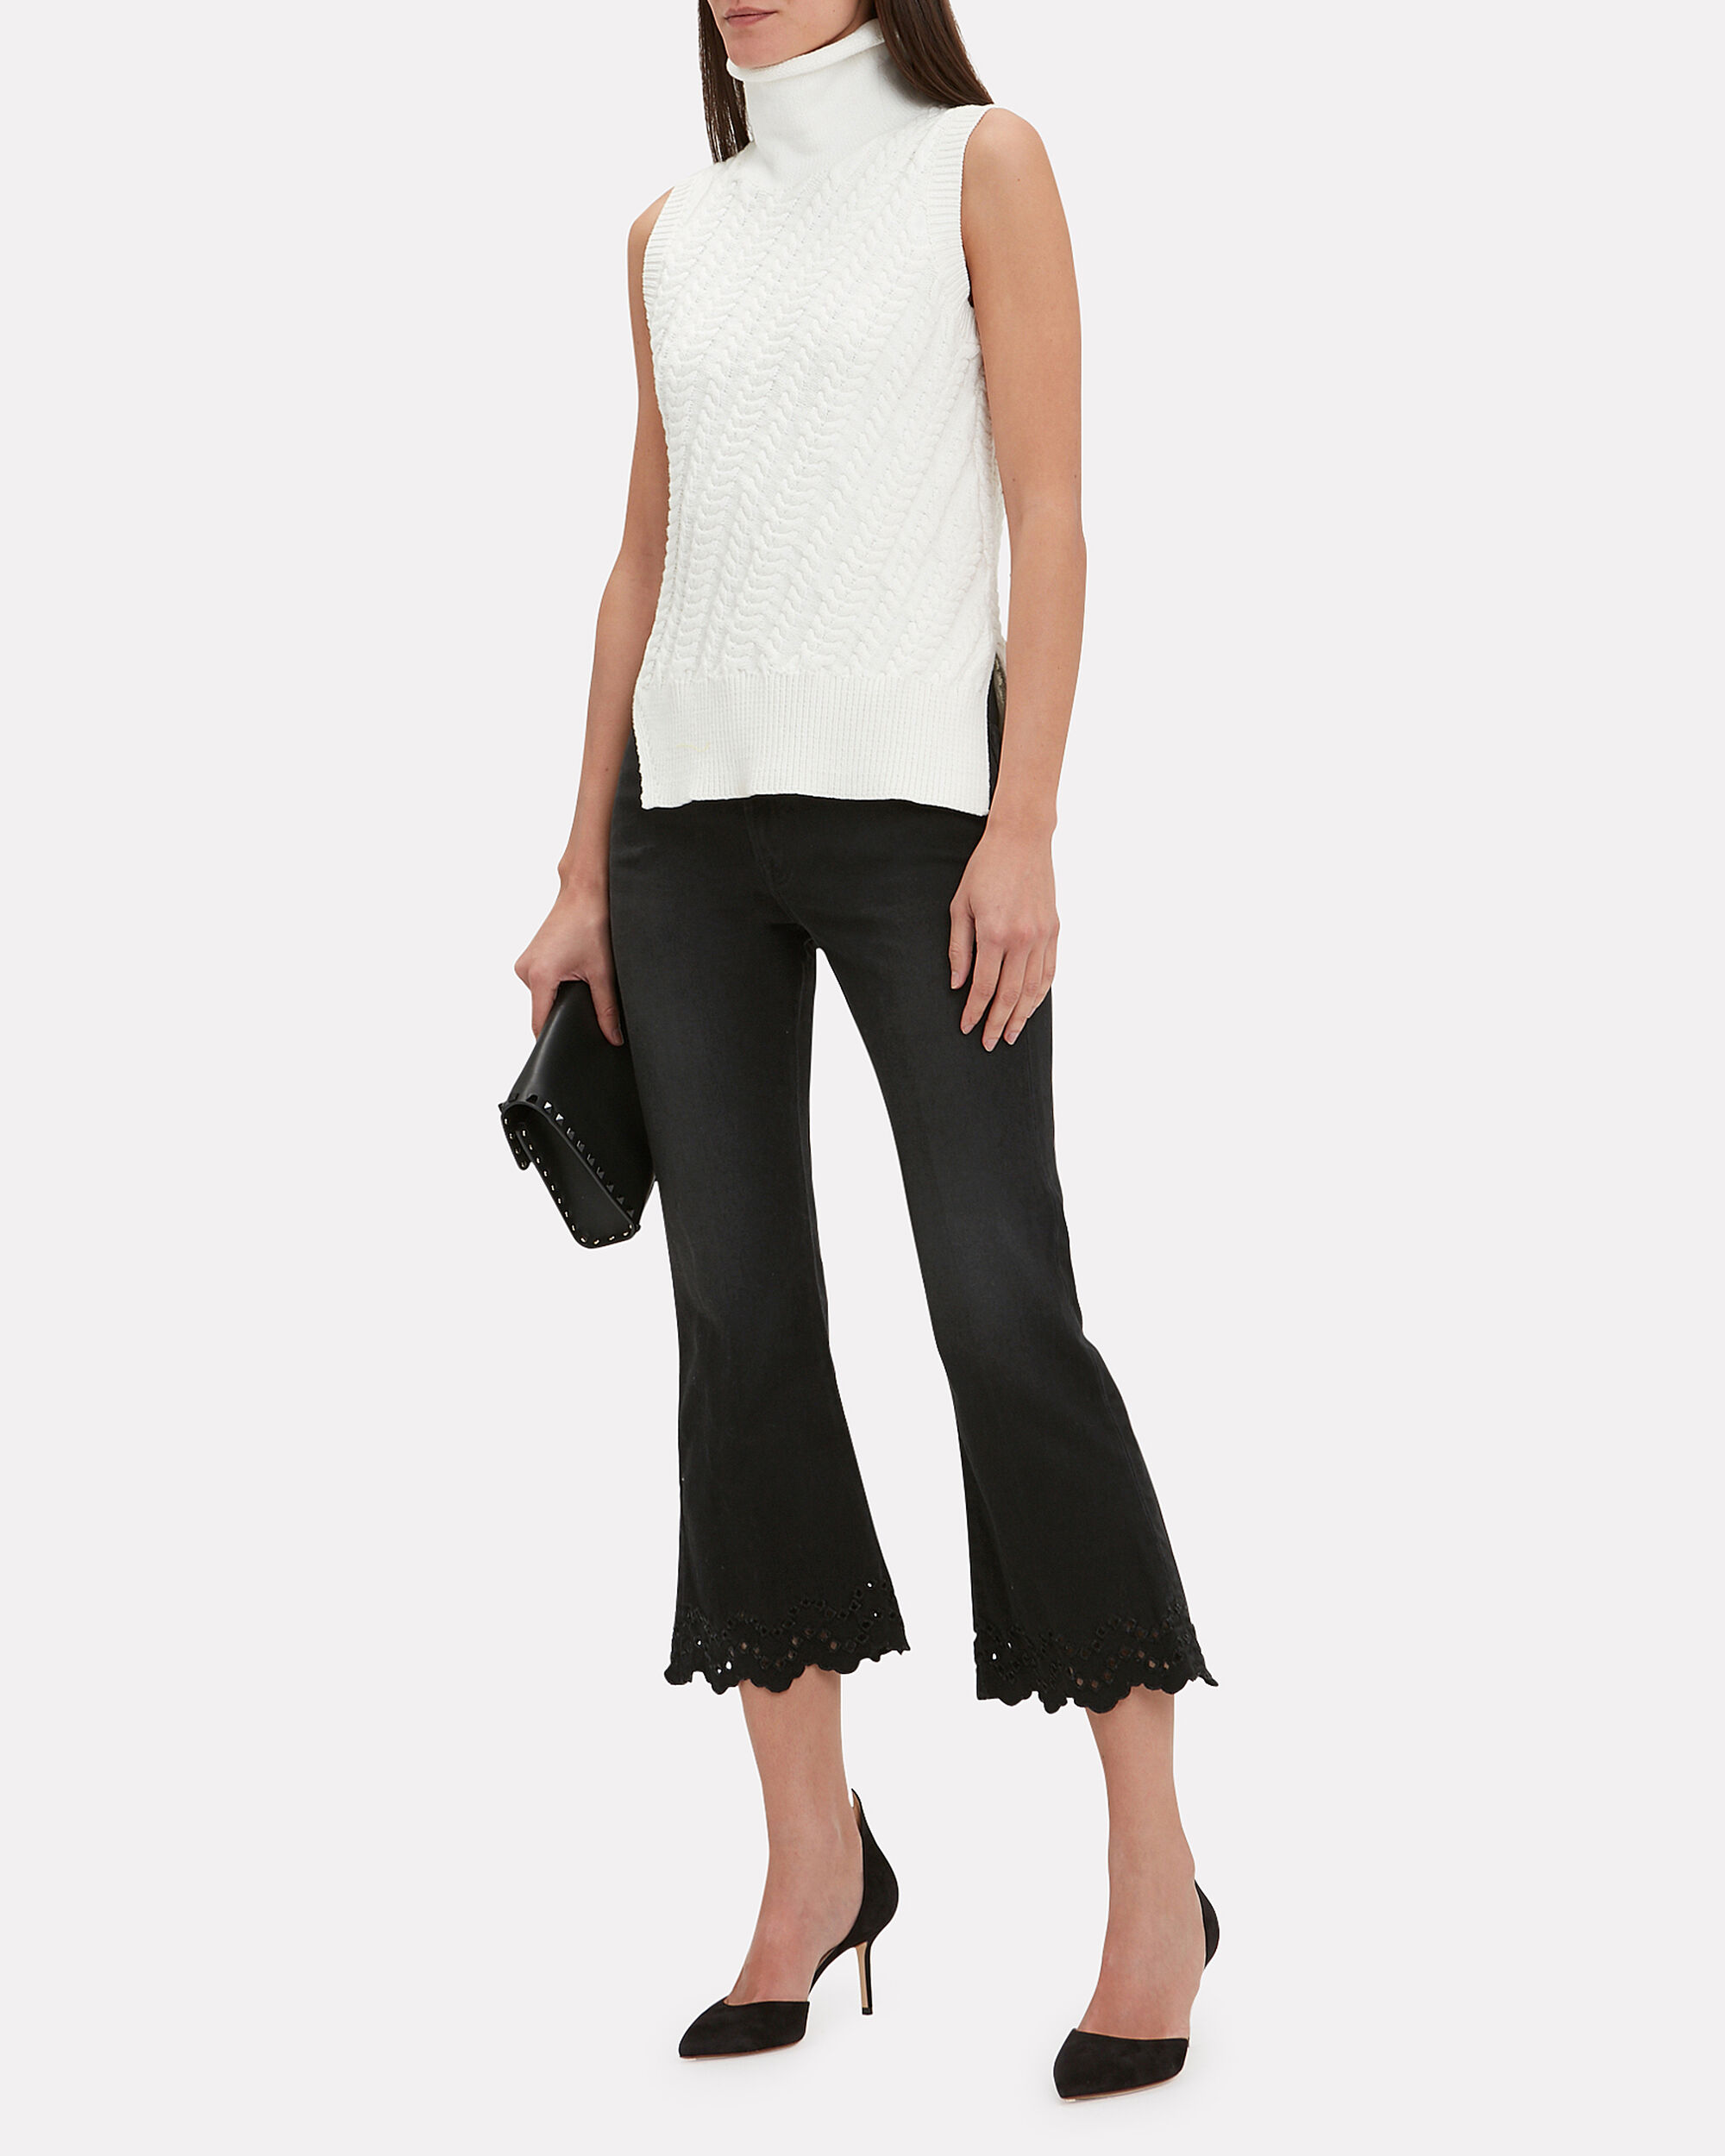 Schiffly Crop Flare Jeans, FADED BLACK DENIM, hi-res